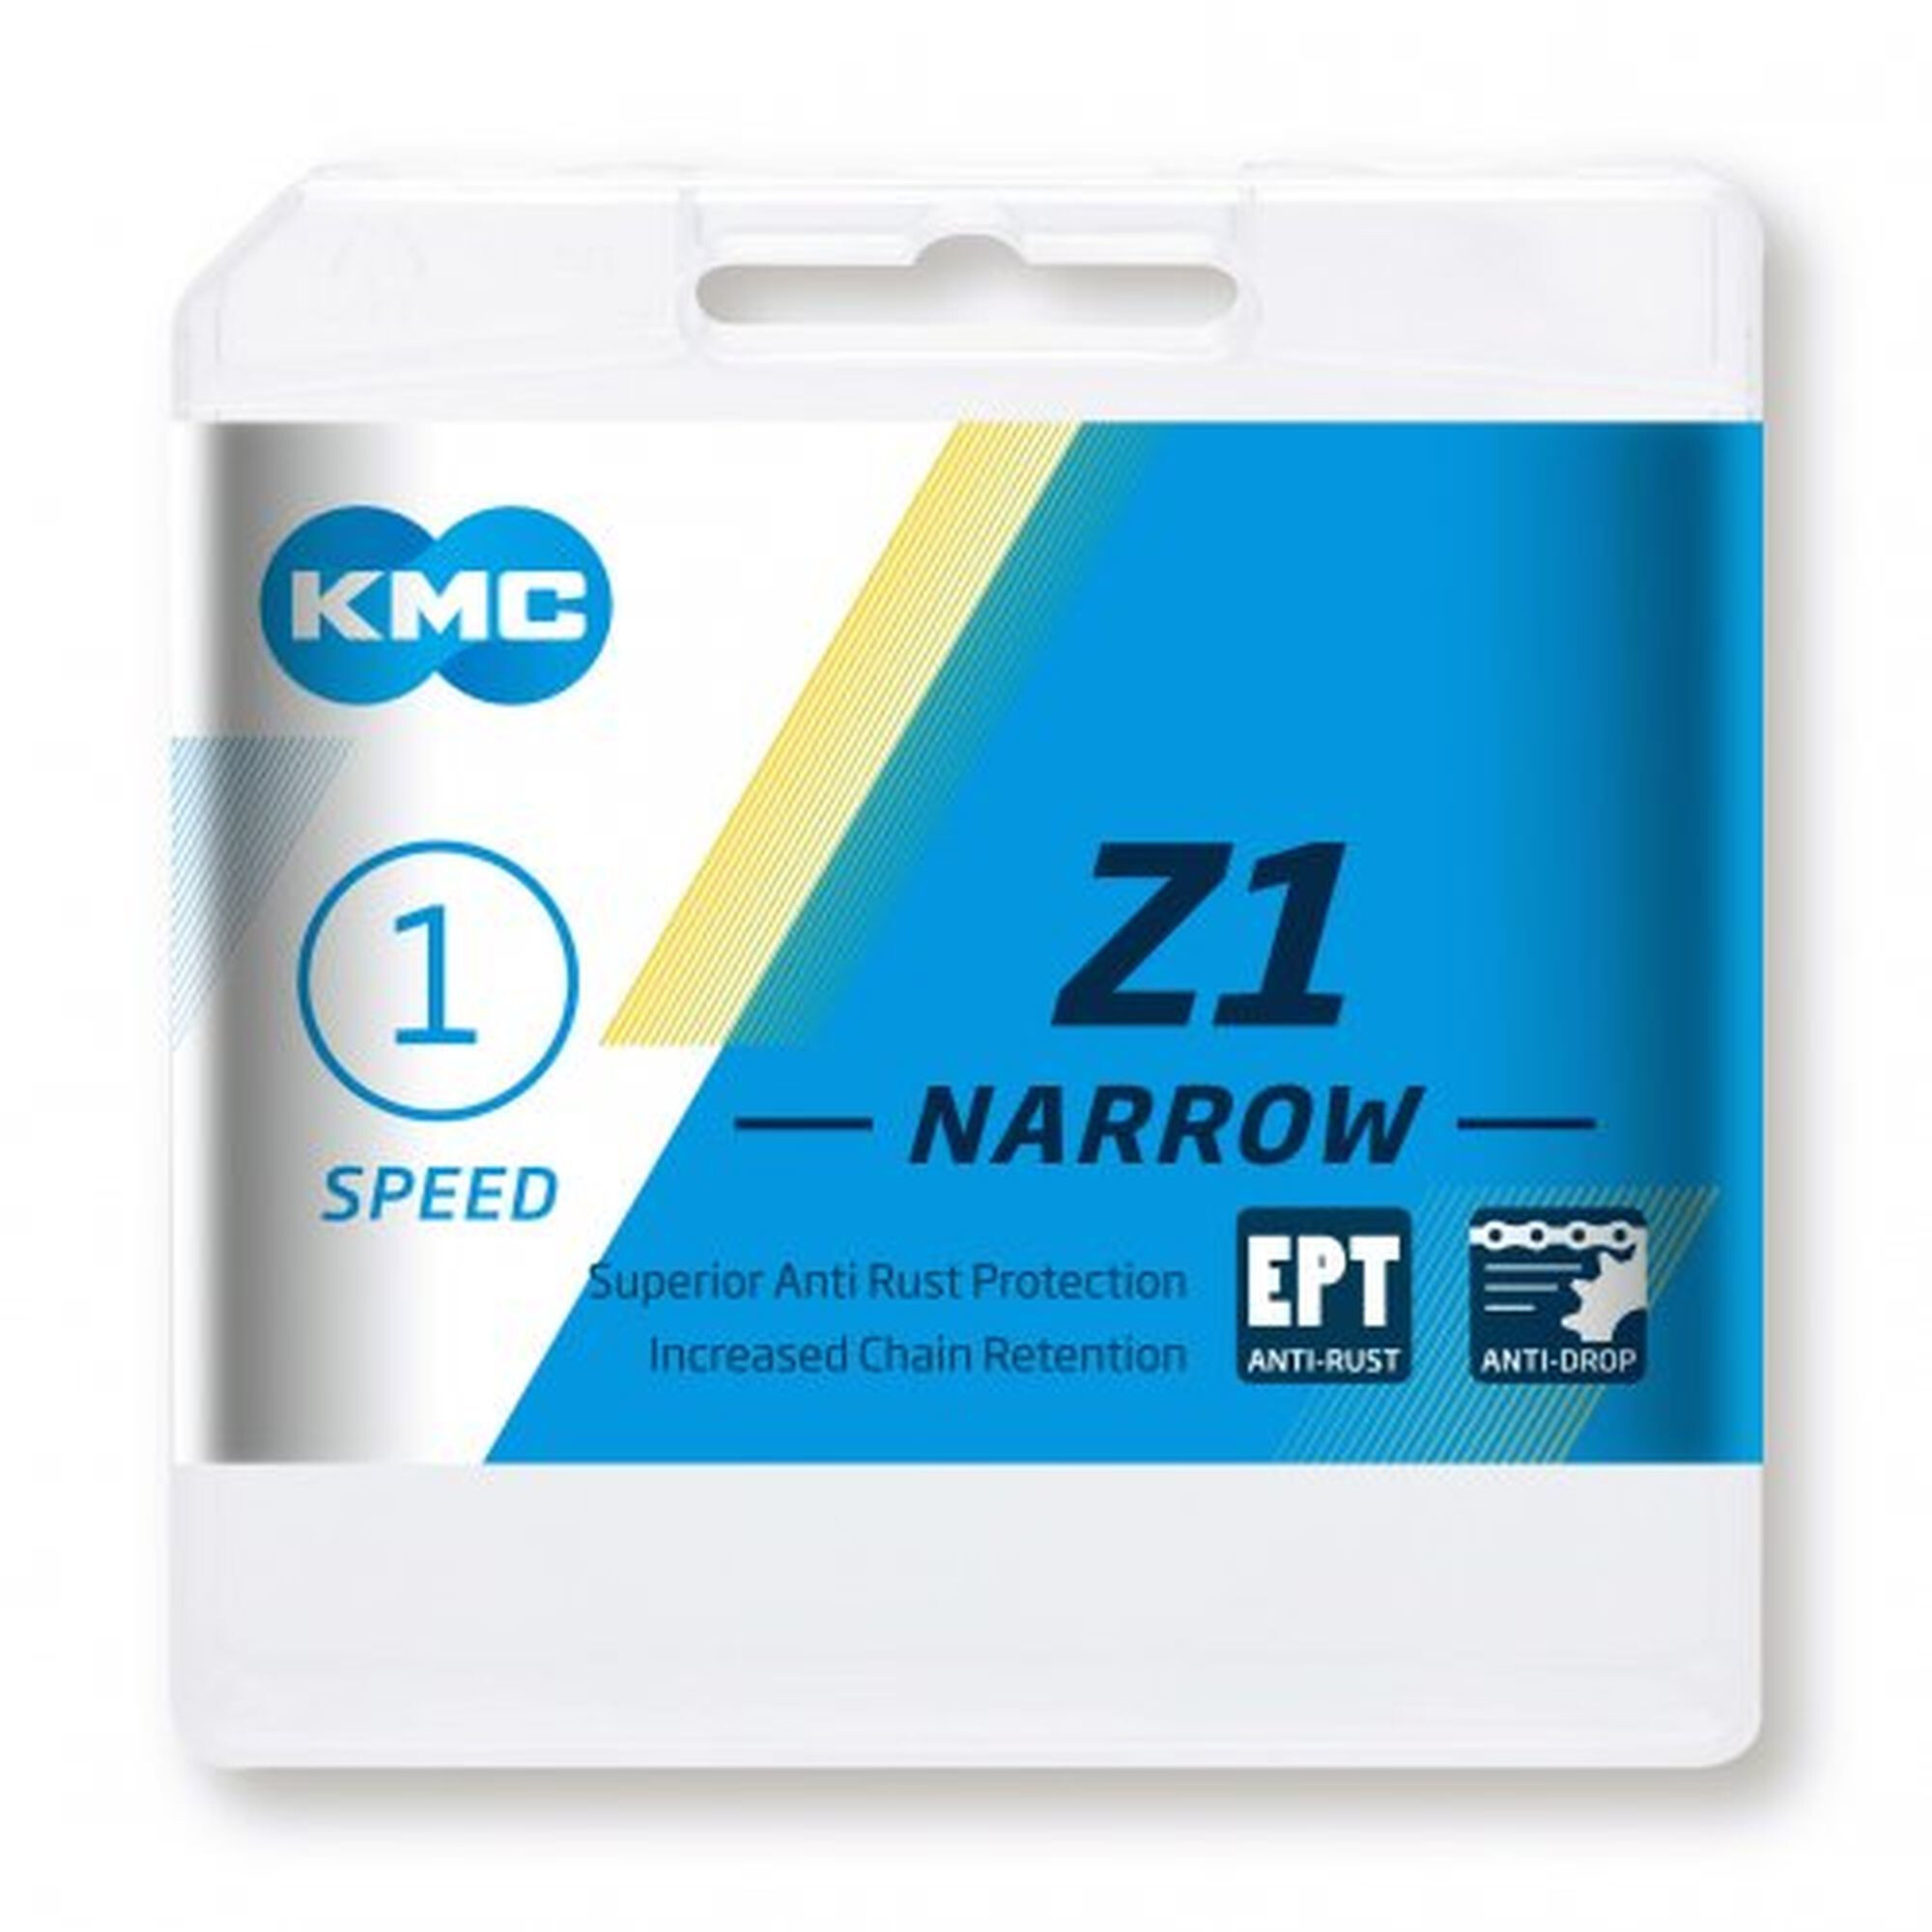 KMC Z1 Narrow EPT Kæde 1-speed (2019) | Chains